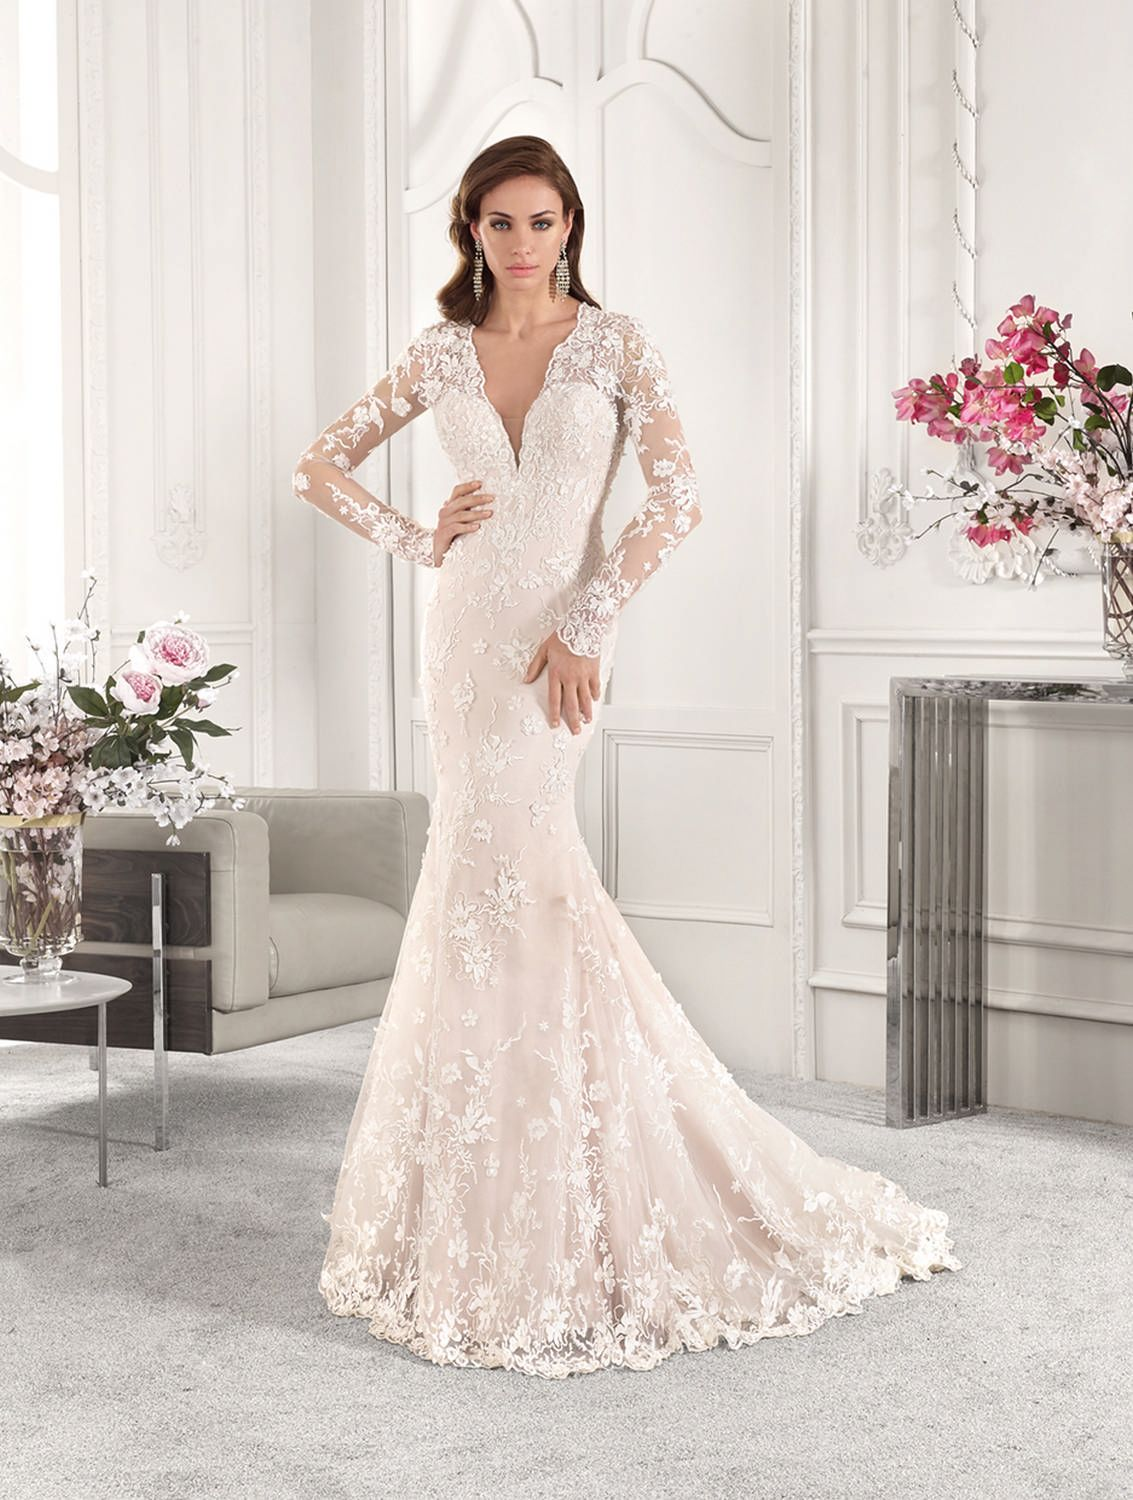 Demetrios wedding dress style vow renewal in